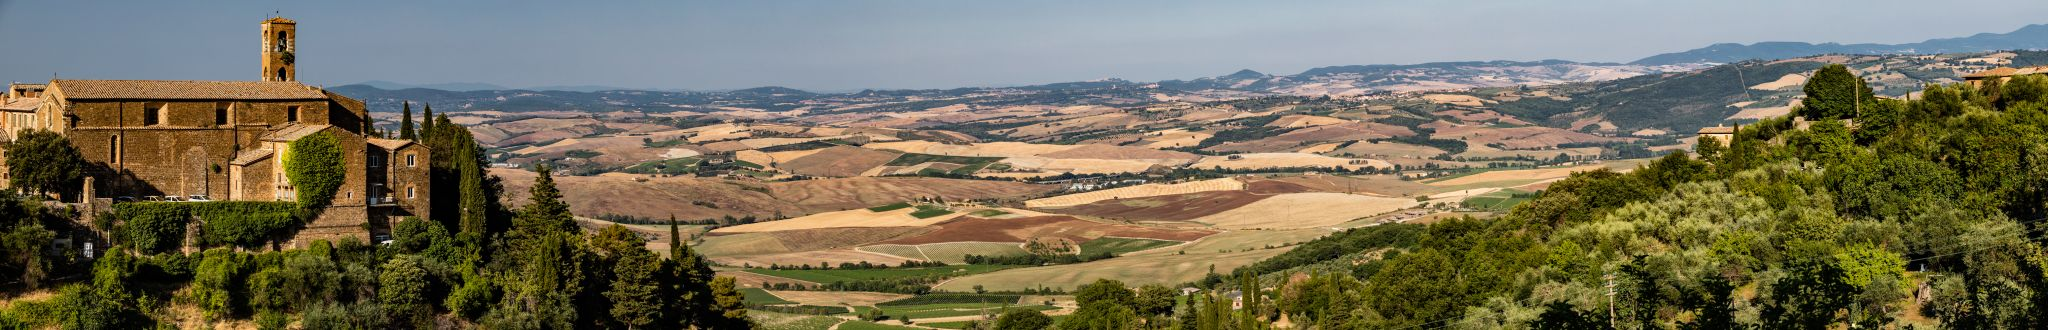 View of the Valley, Italy